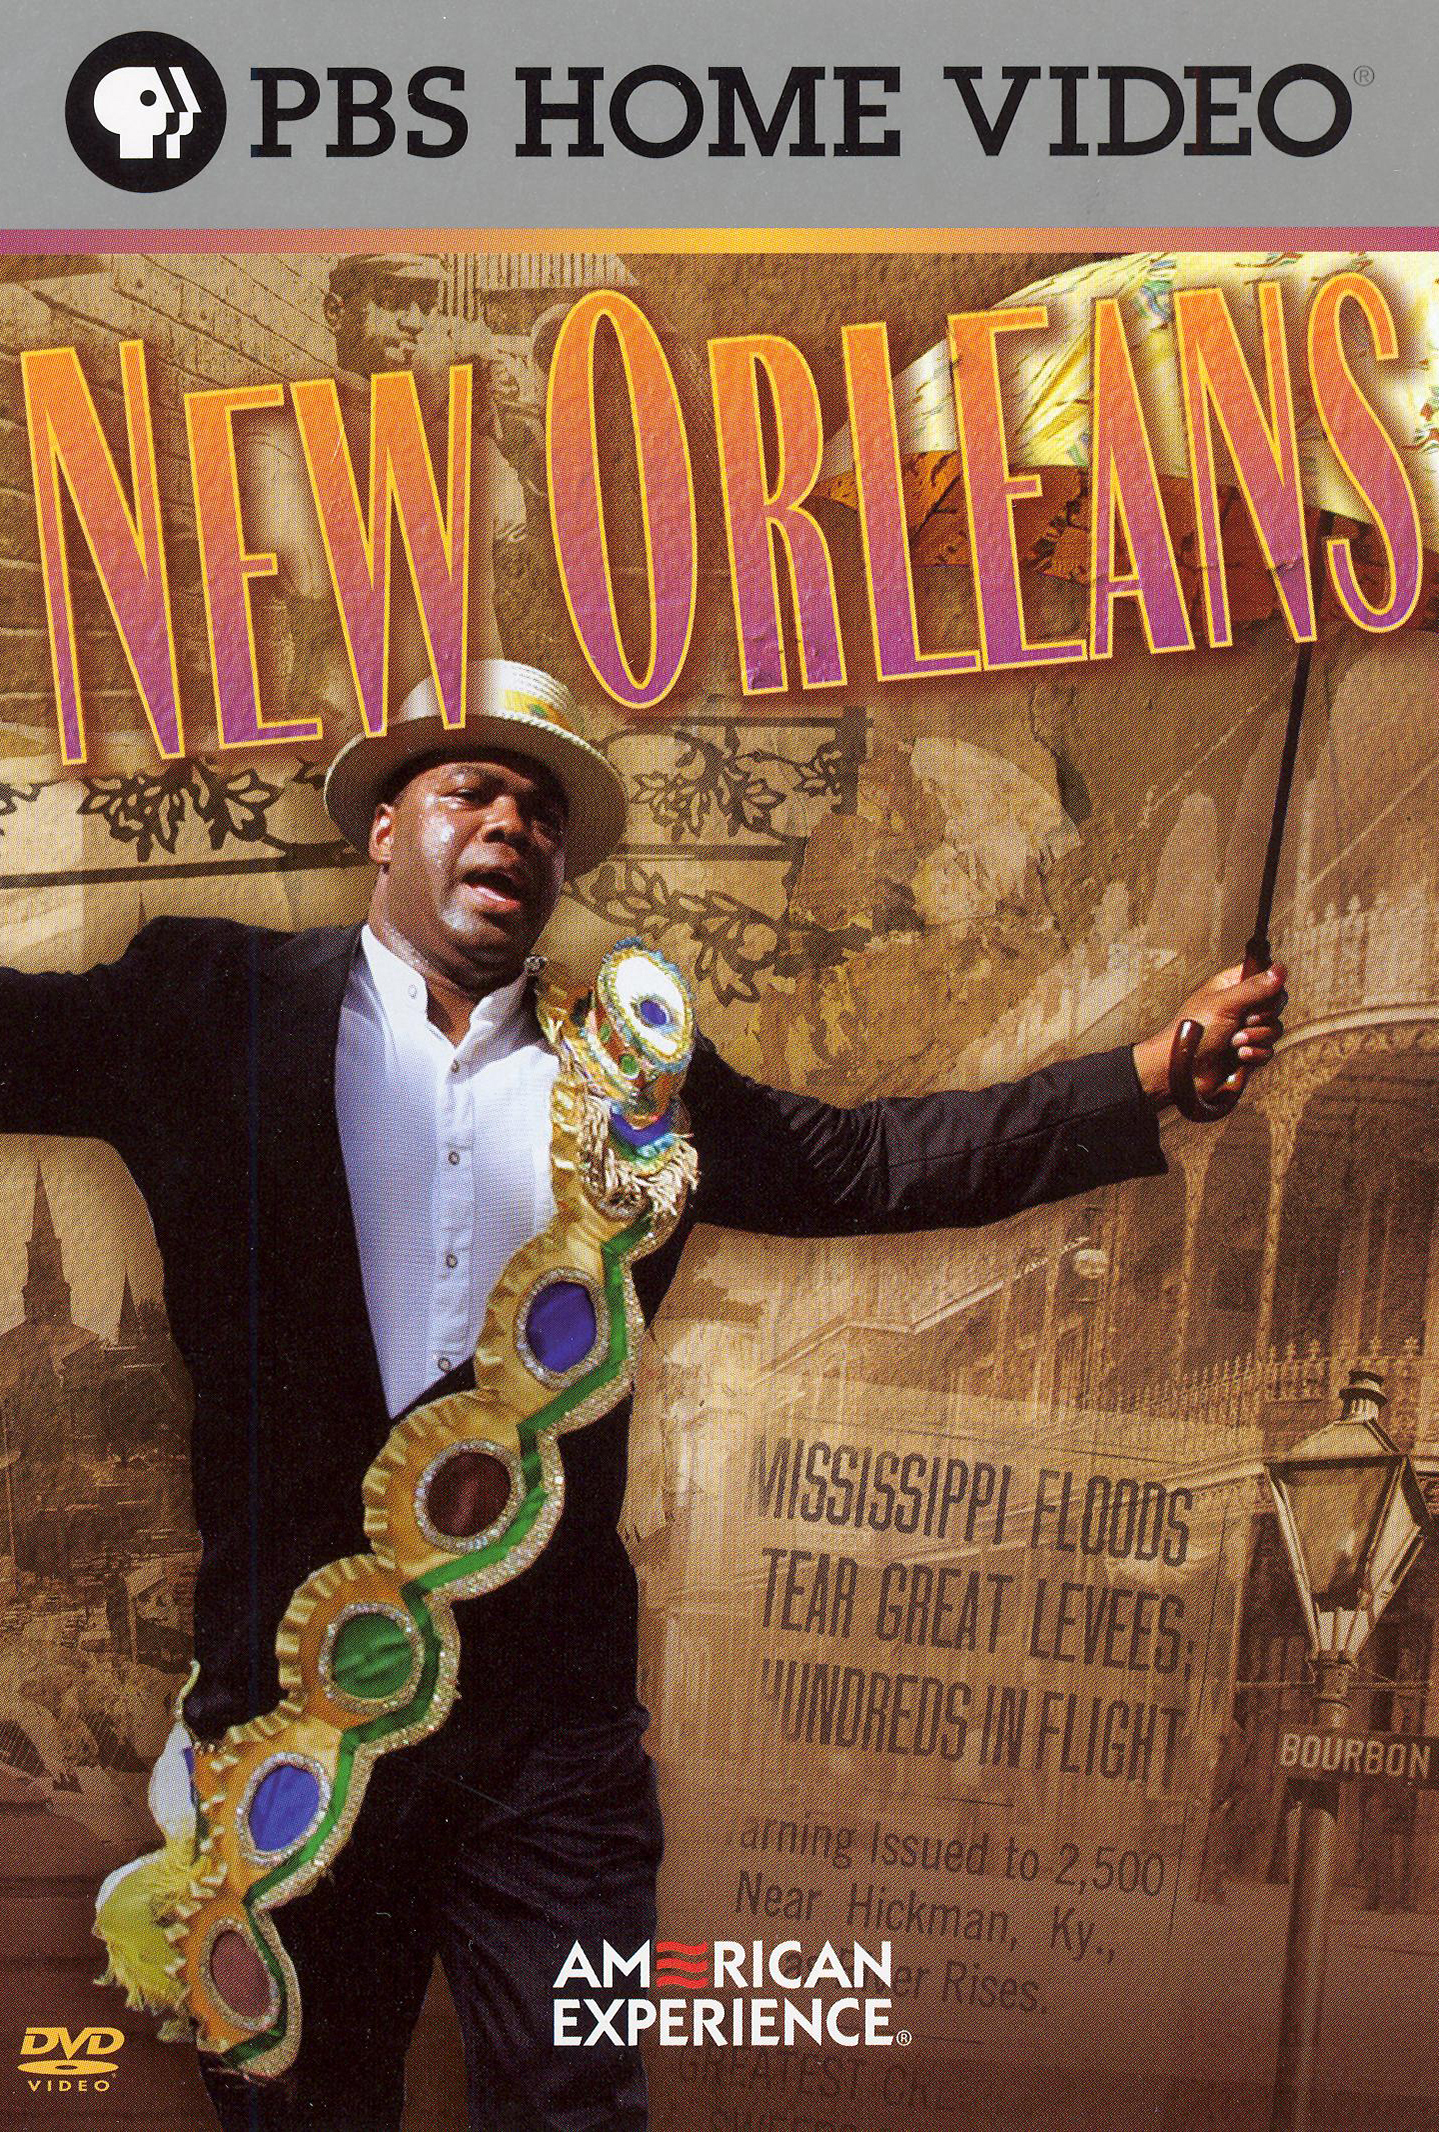 NEW ORLEANS  (2007)  EDITOR  PBS—AMERICAN EXPERIENCE